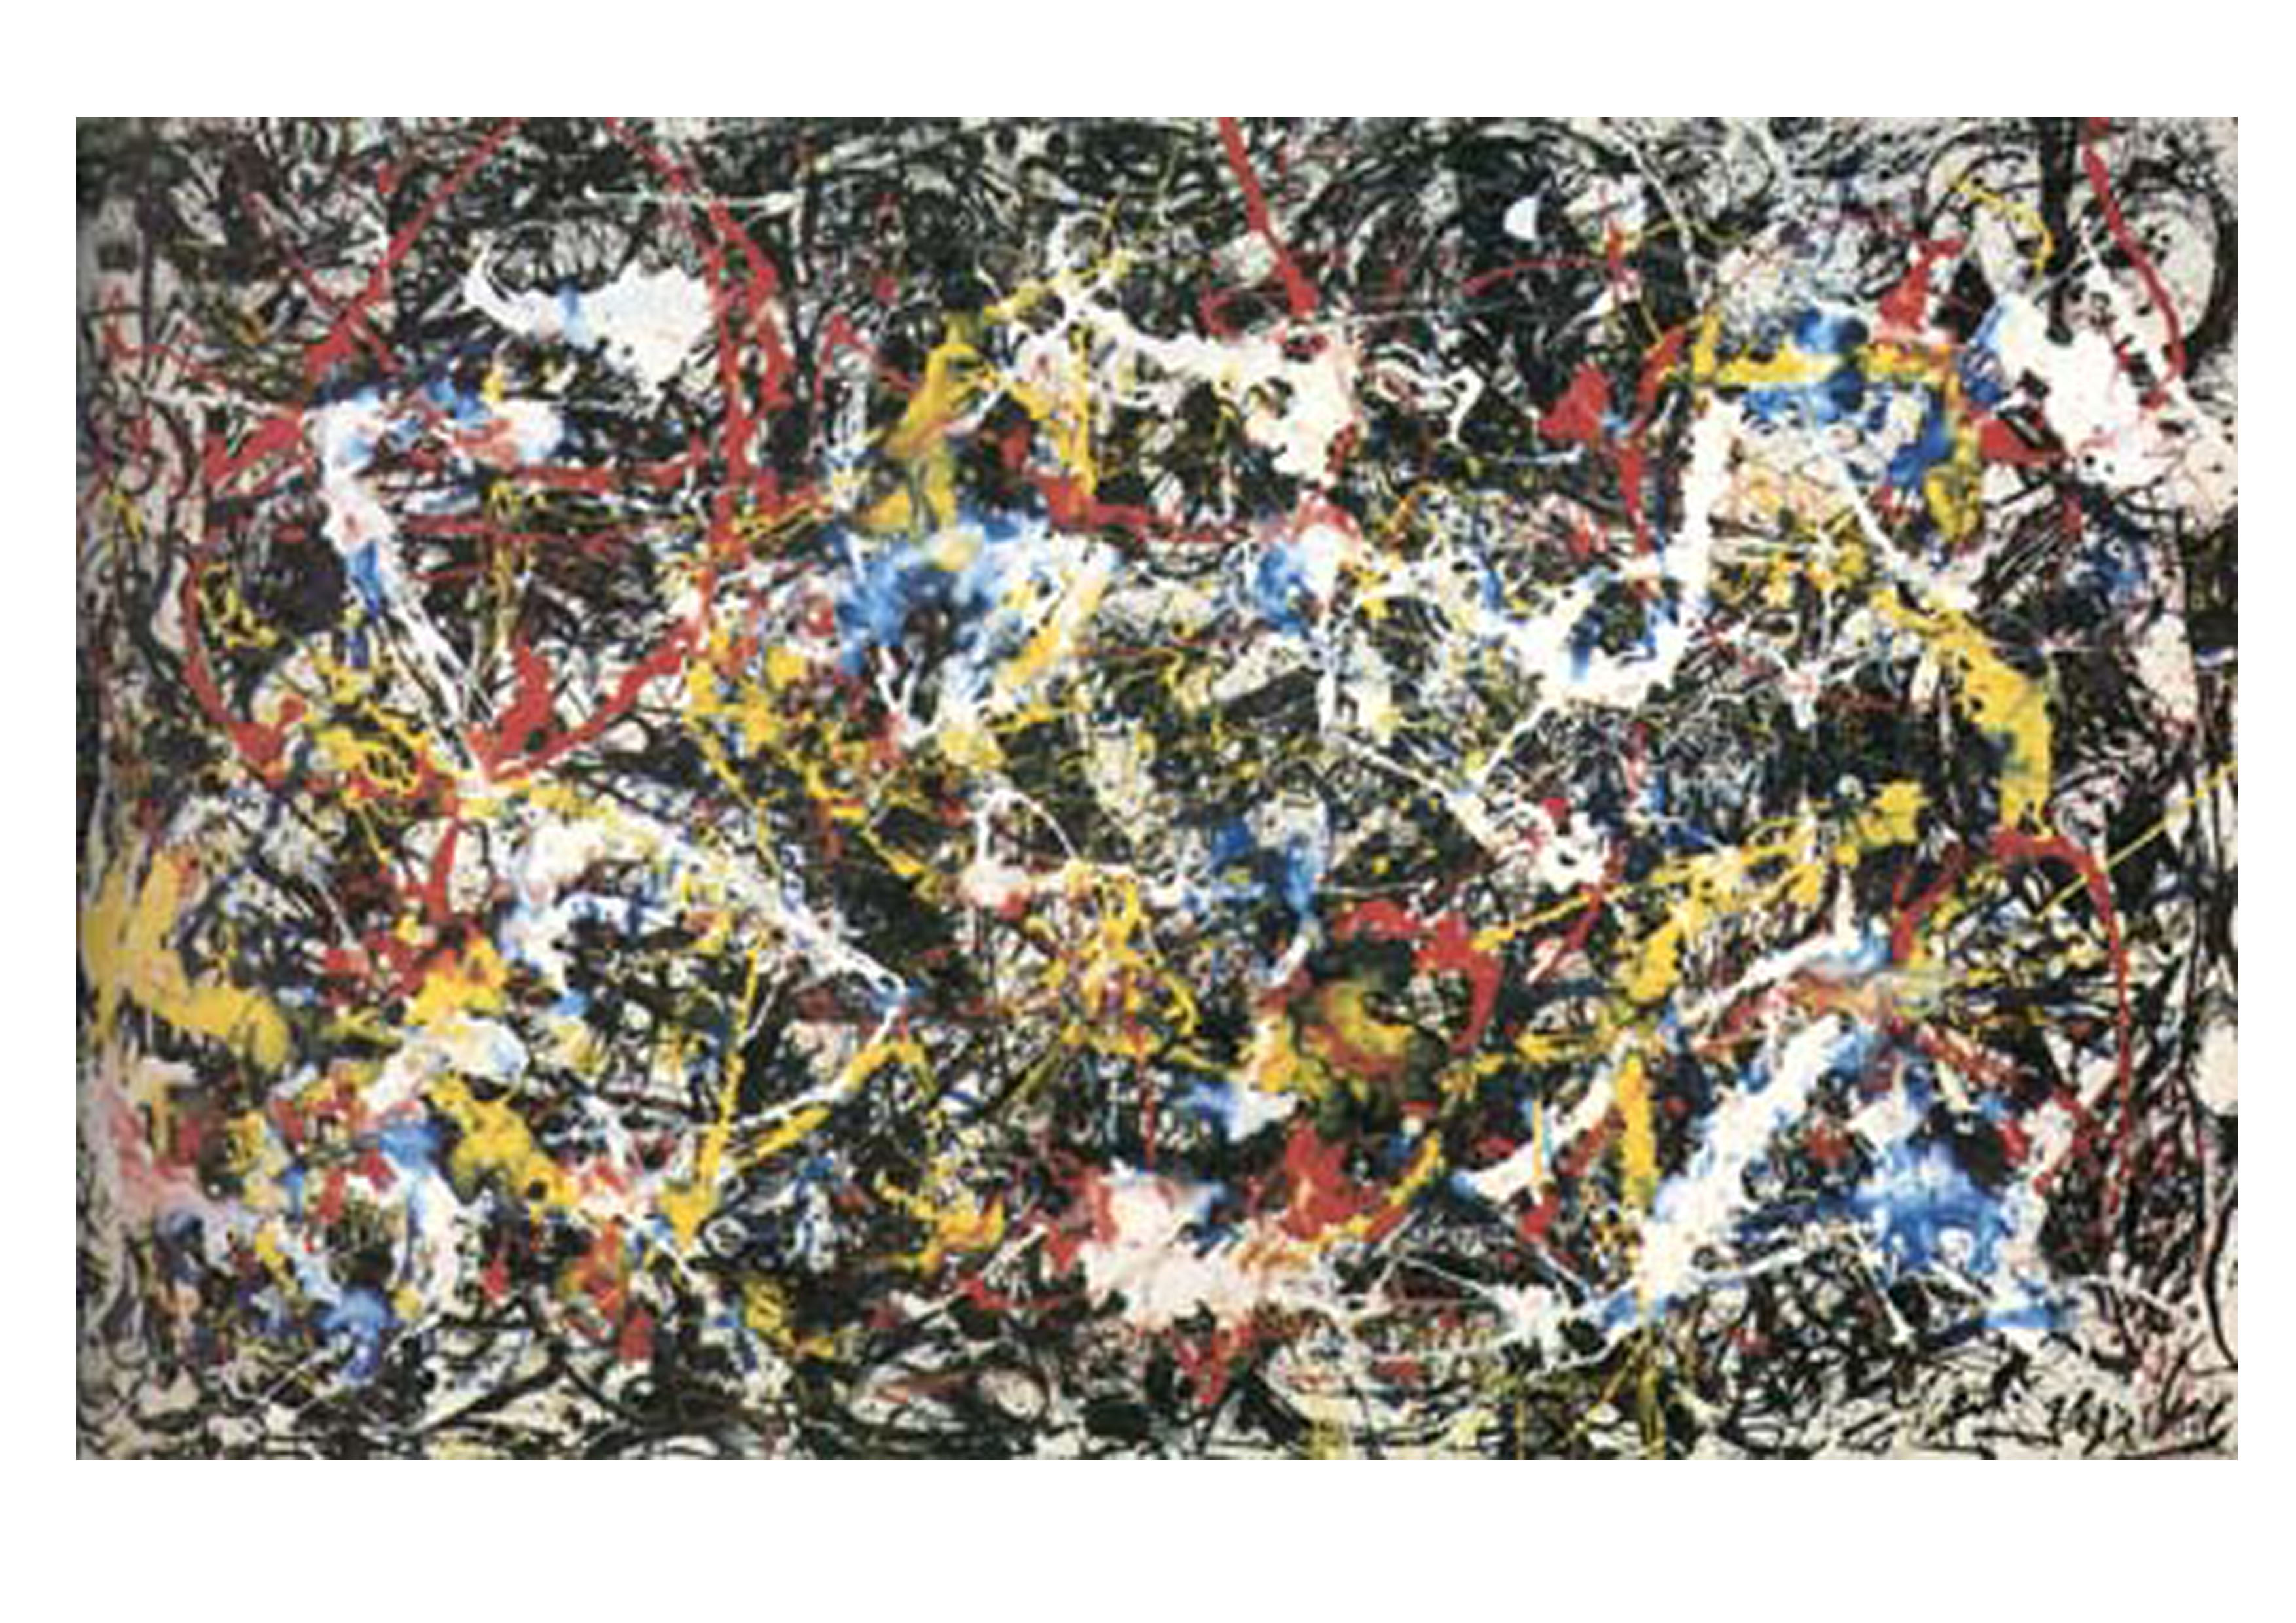 American Action Painters Essay